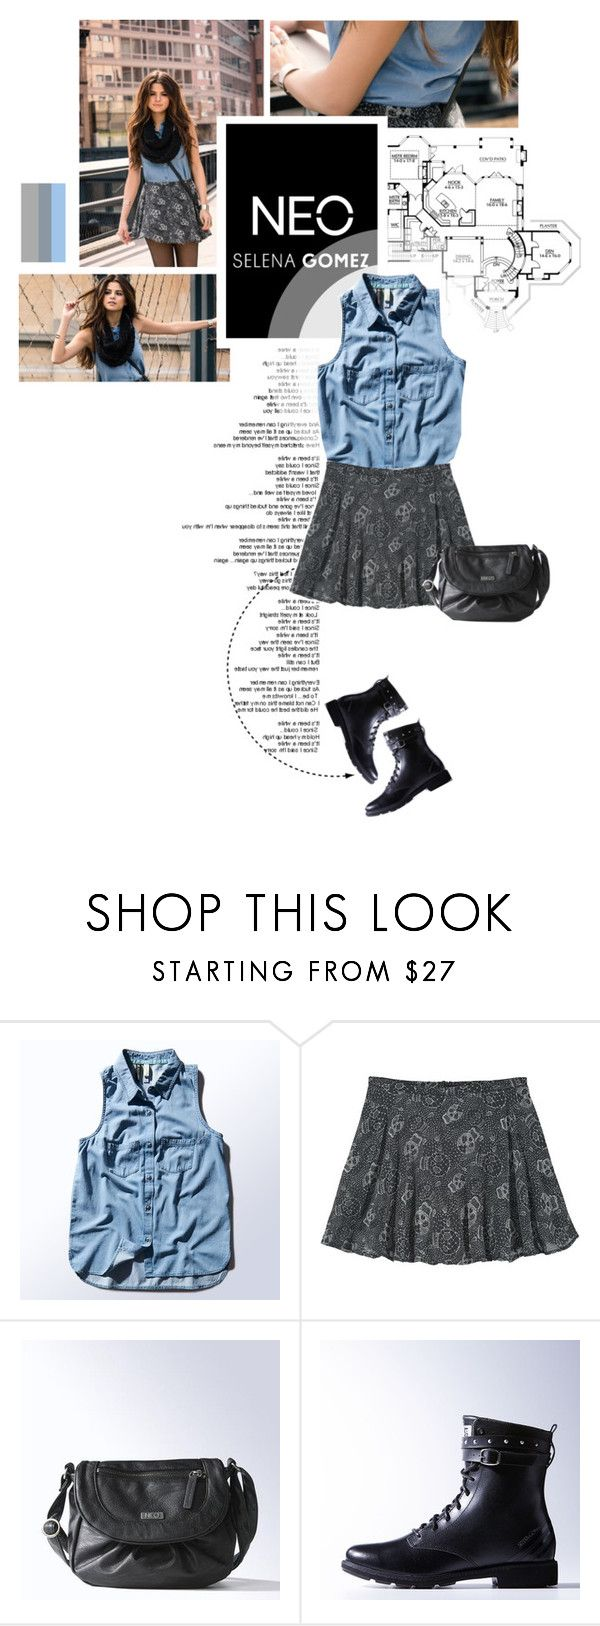 """""""Live Your Style with adidas NEO LabelLive Your Style with adidas NEO Label"""" by szansza ❤ liked on Polyvore featuring adidas NEO, adidas and neorunway"""